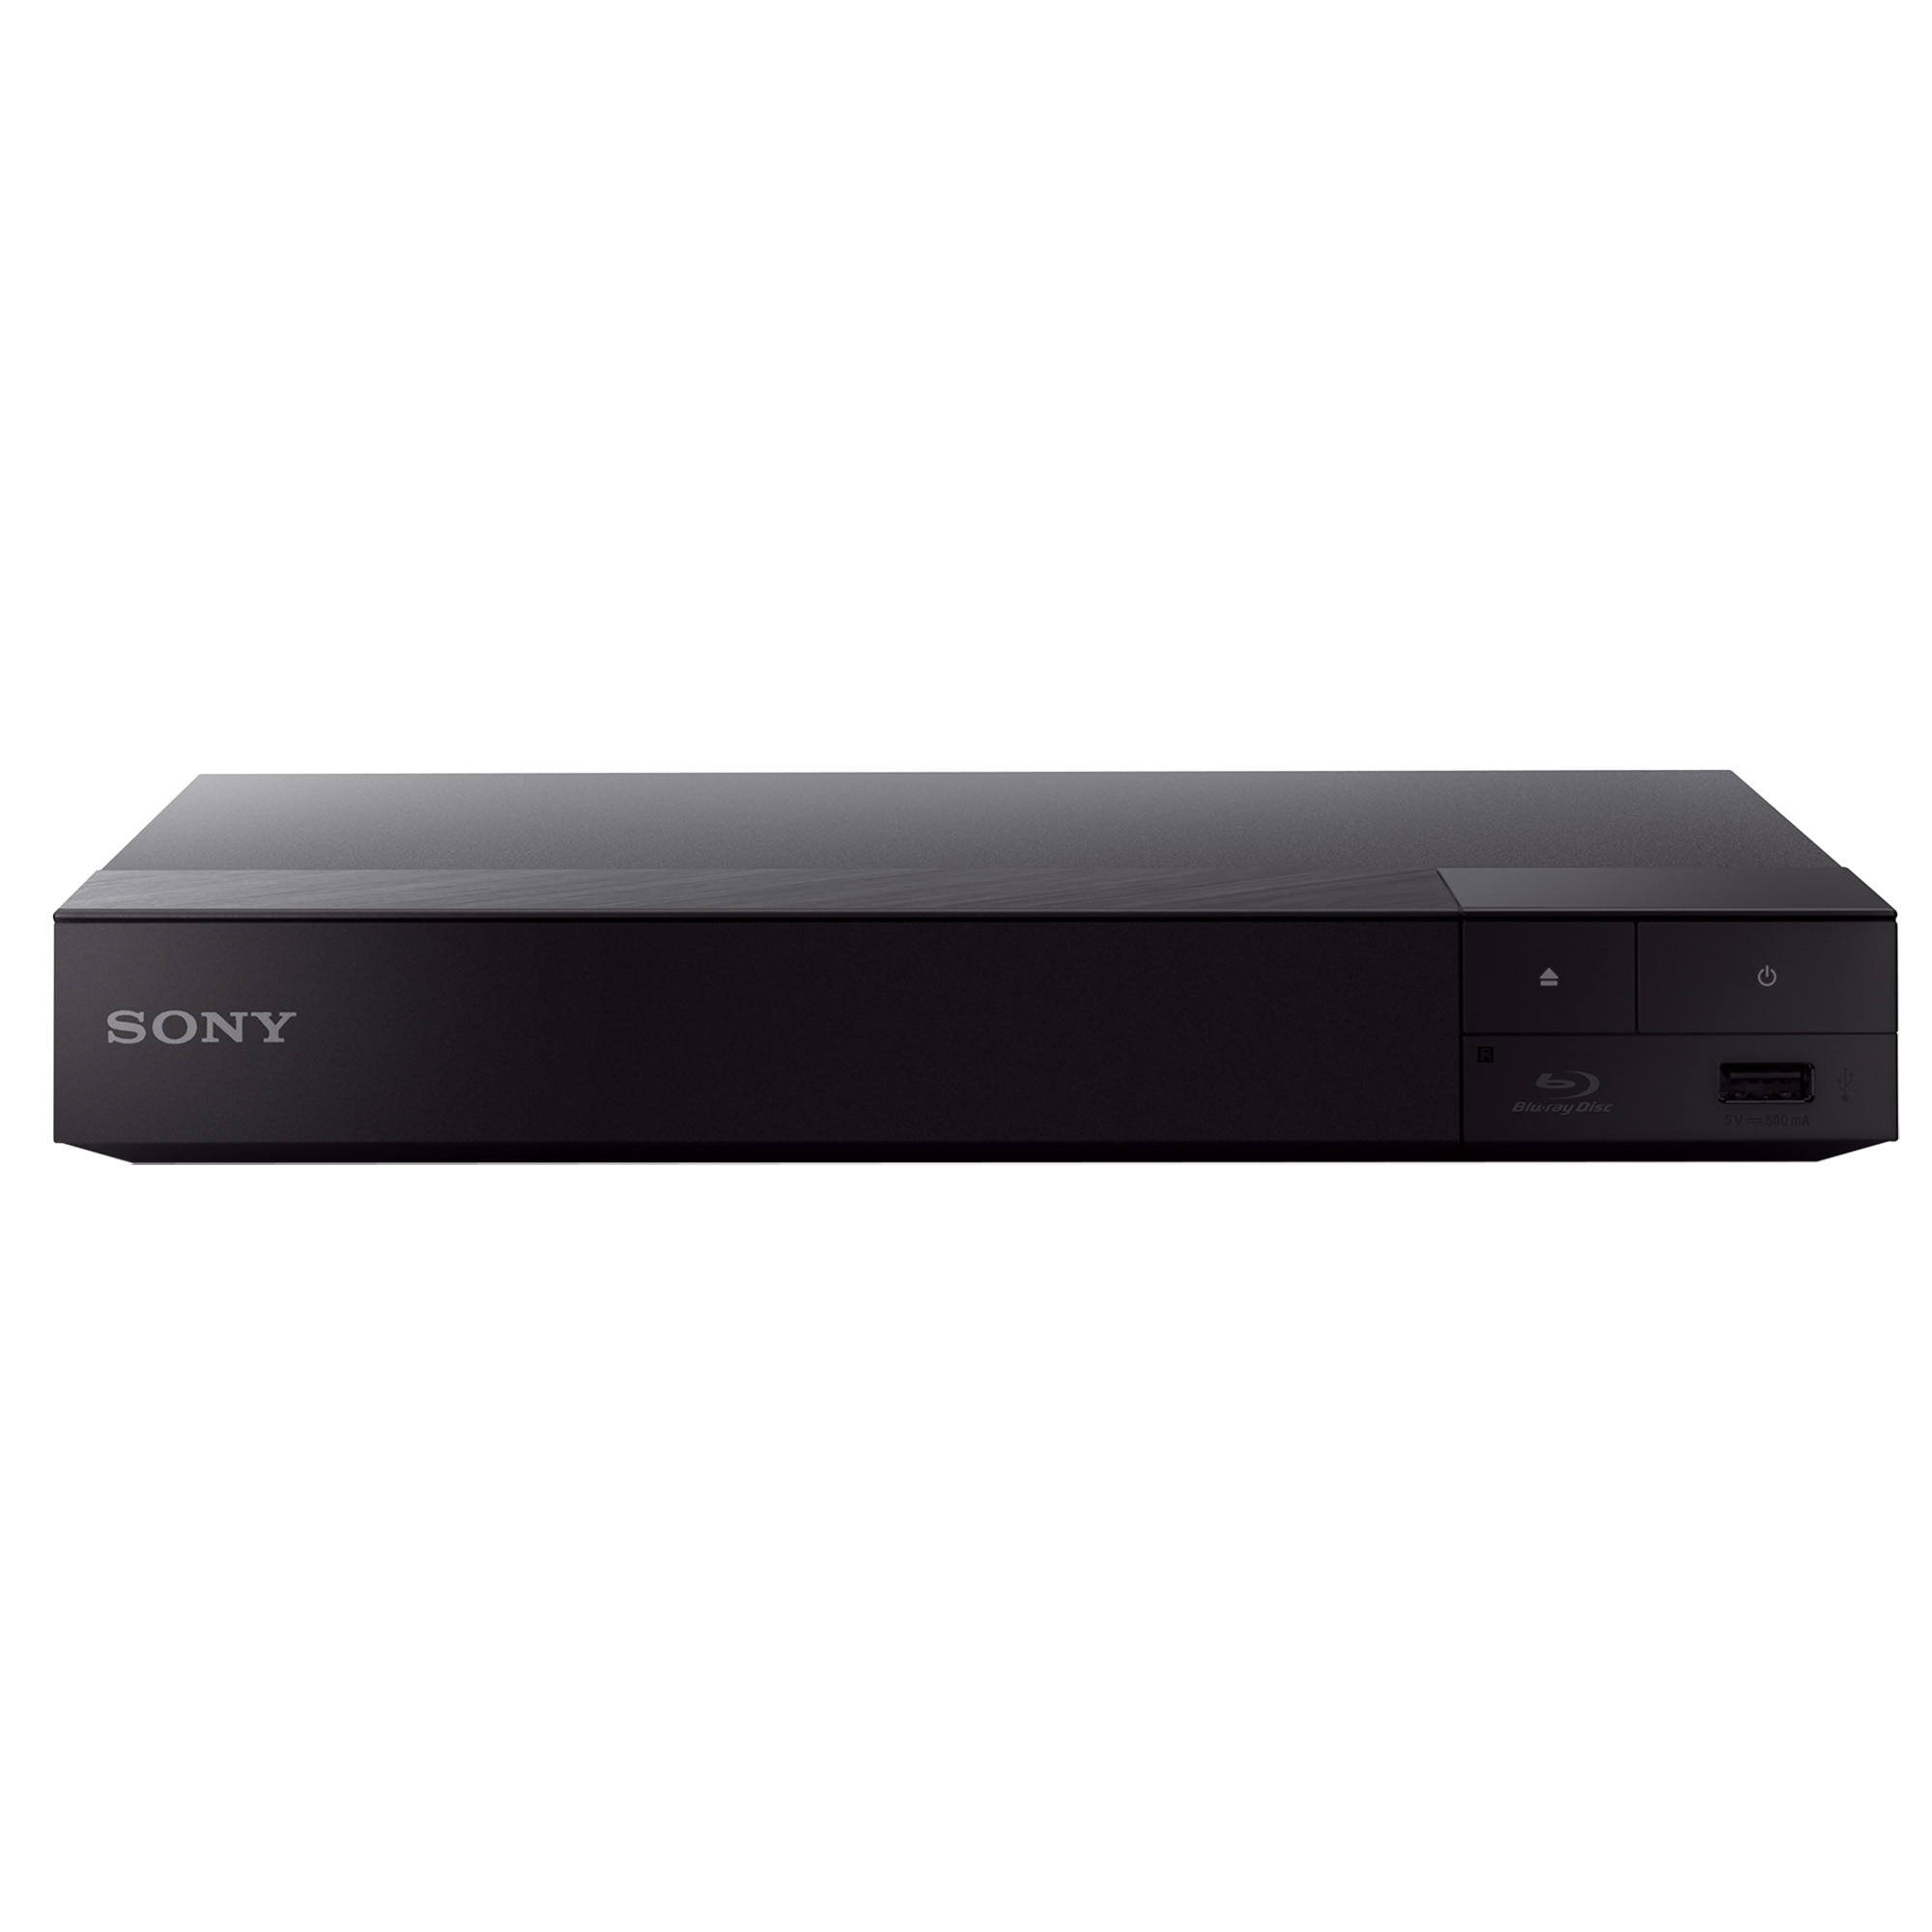 Fotografie Blu-ray Player Sony BDPS6700, 4K upscaling, Smart, CD/DVD Player